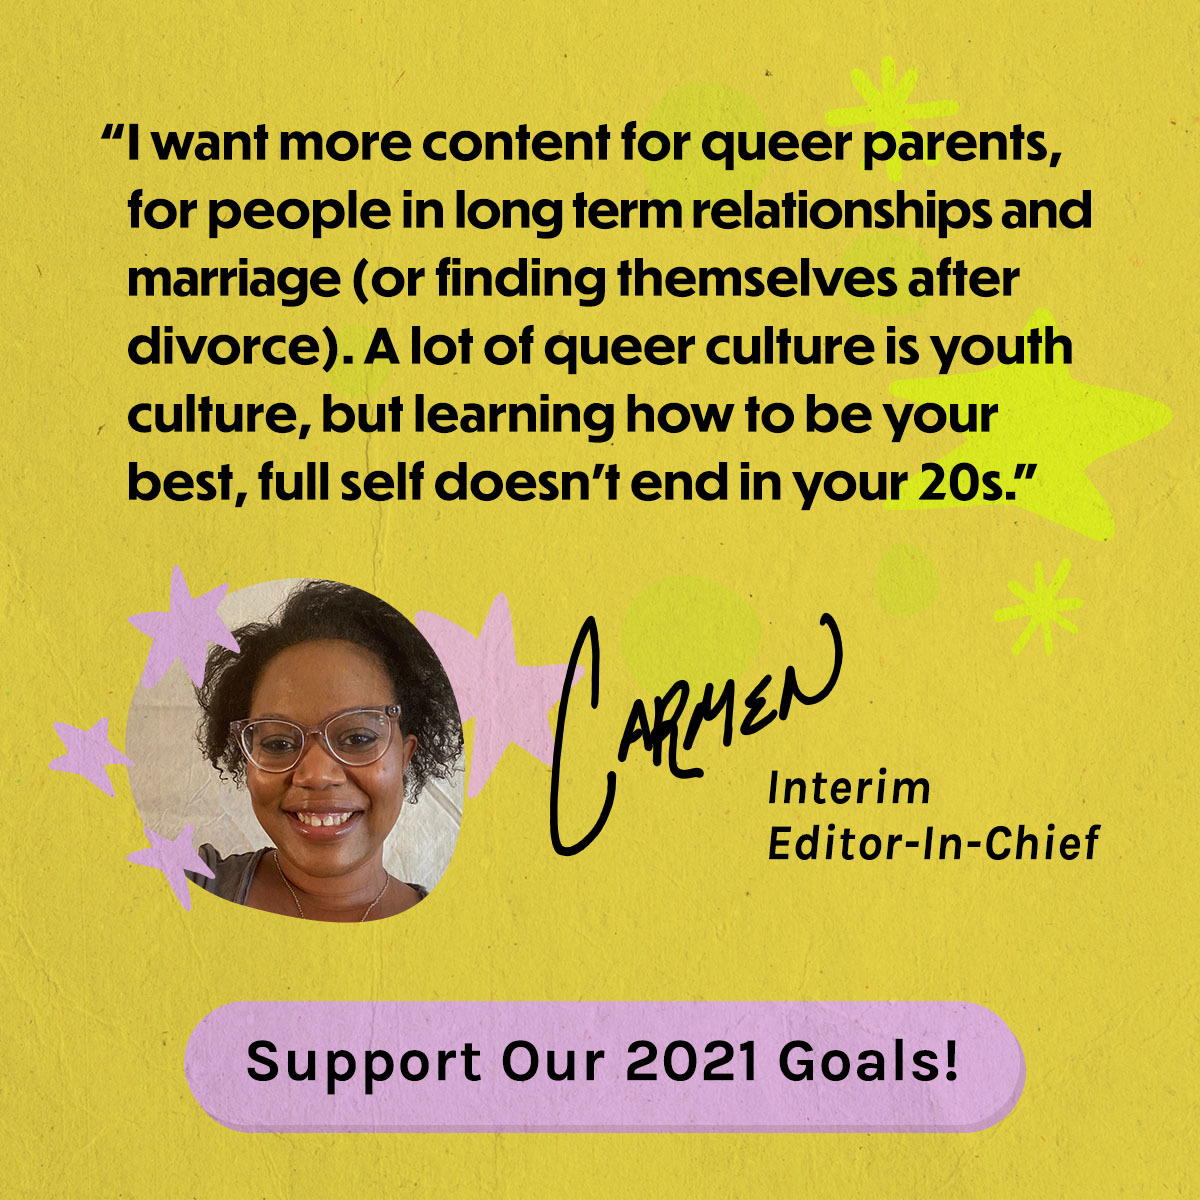 I want more content for queer parents, for people in long term relationships and marriage (or finding themselves after divorce). A lot of queer culture is youth culture, but learning how to be your best, full self doesn't end in your 20's. - by Carmen, Interim Editor-in-Chief. Support Our 2021 Goals!